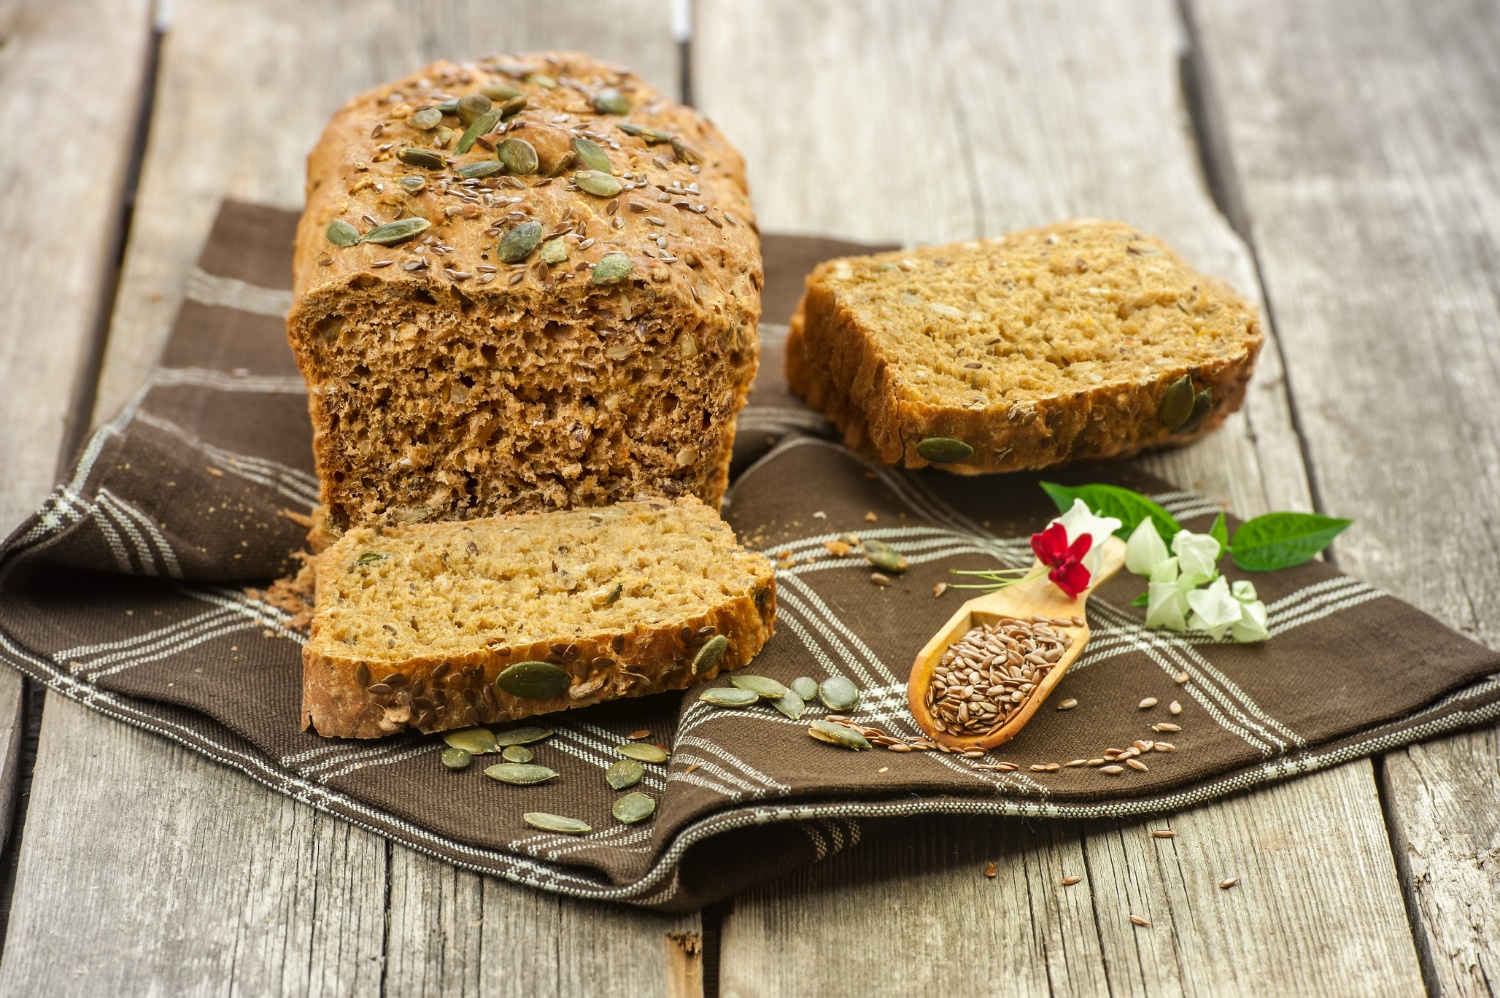 Flax bread can decrease risks of breast cancer | Shutterstock